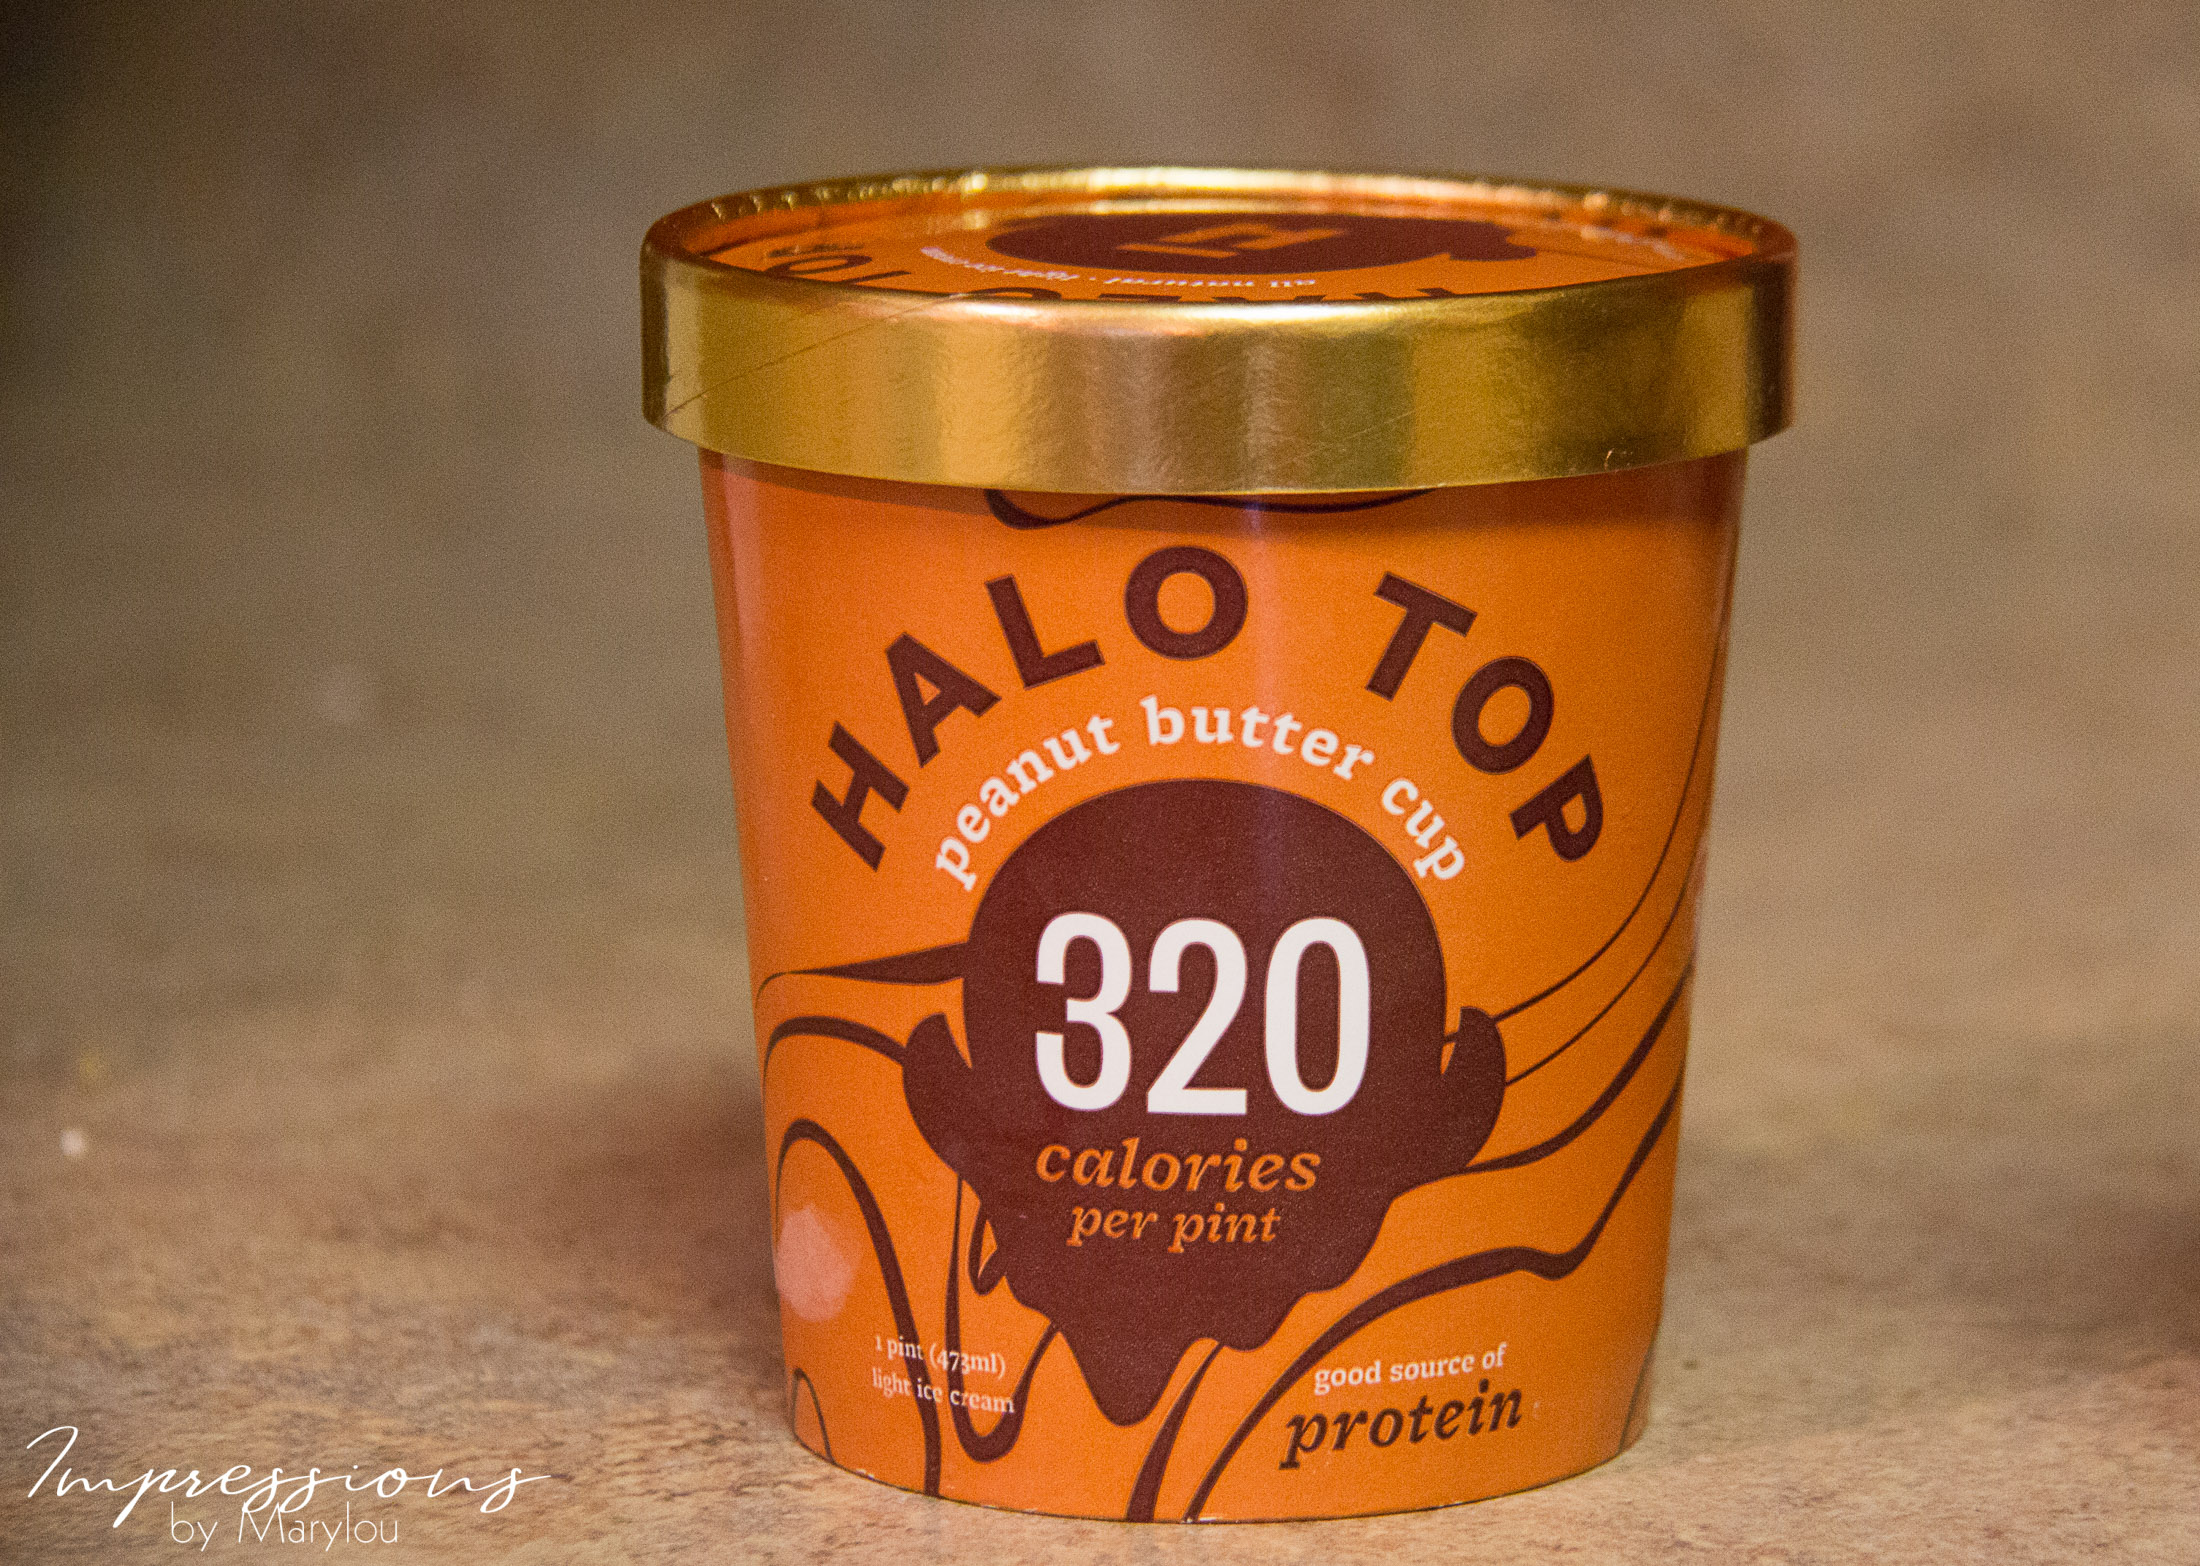 Fullsize Of Halo Top Peanut Butter Cup